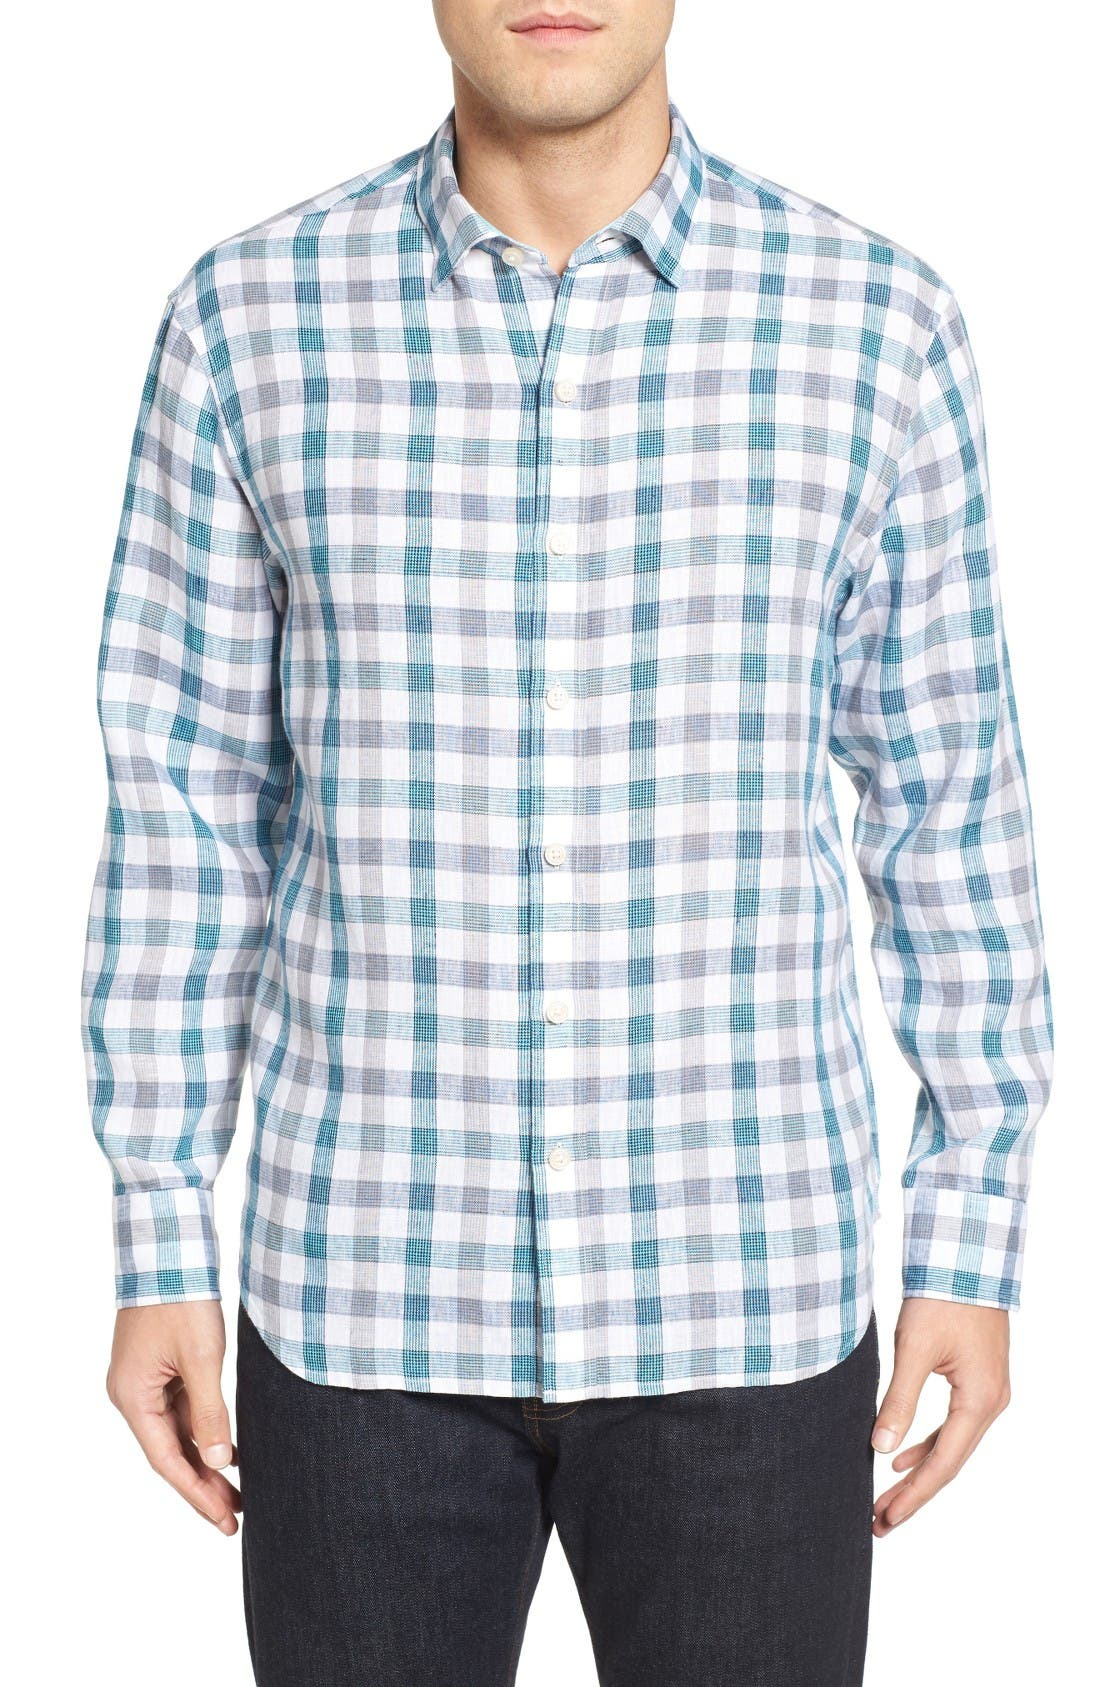 Alternate Image 1 Selected - Tommy Bahama Thira Check Linen Sport Shirt